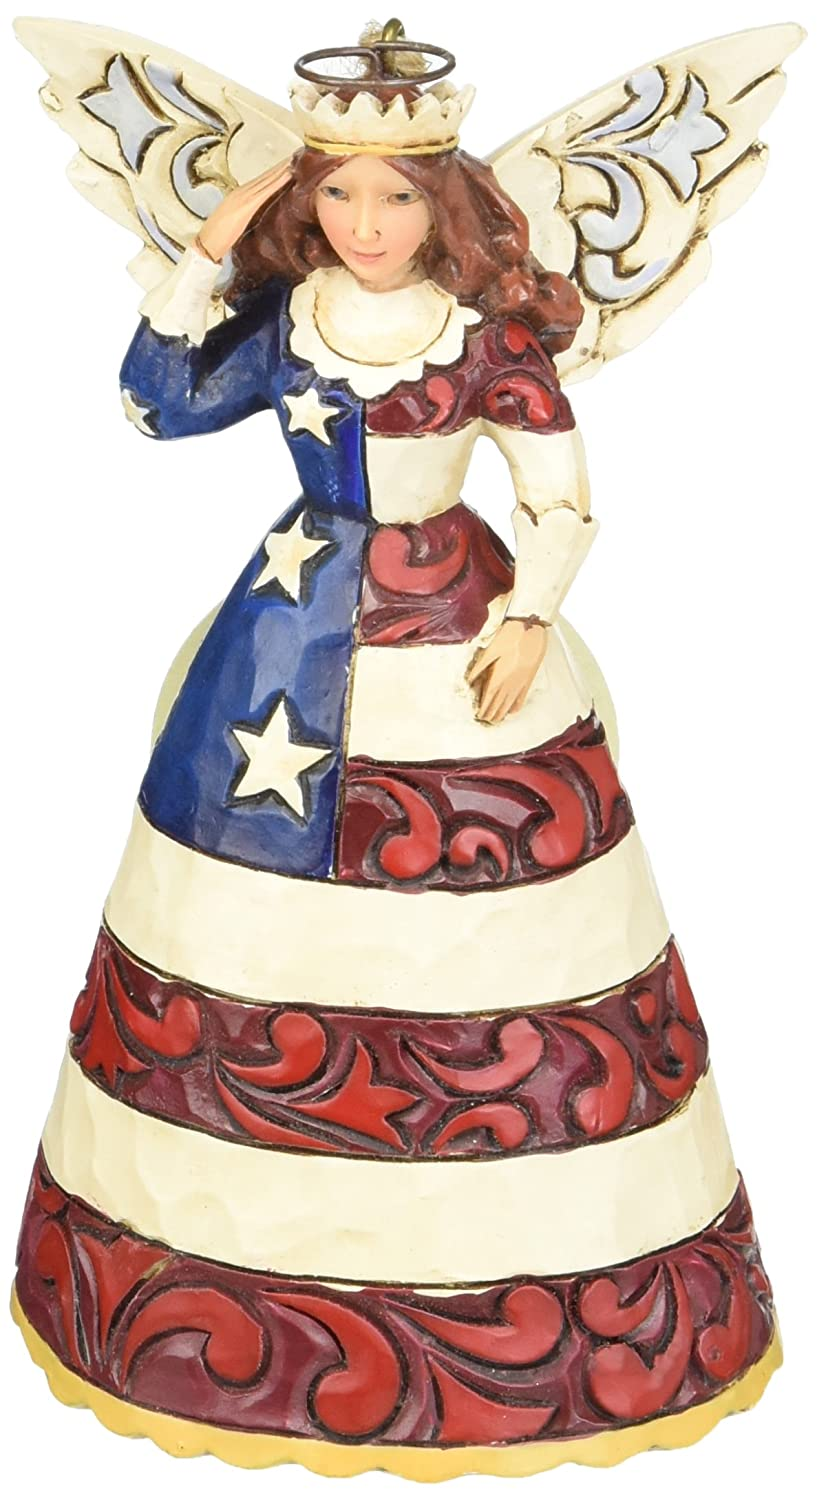 Jim Shore for Enesco Heartwood Creek Patriotic Angel Ornament